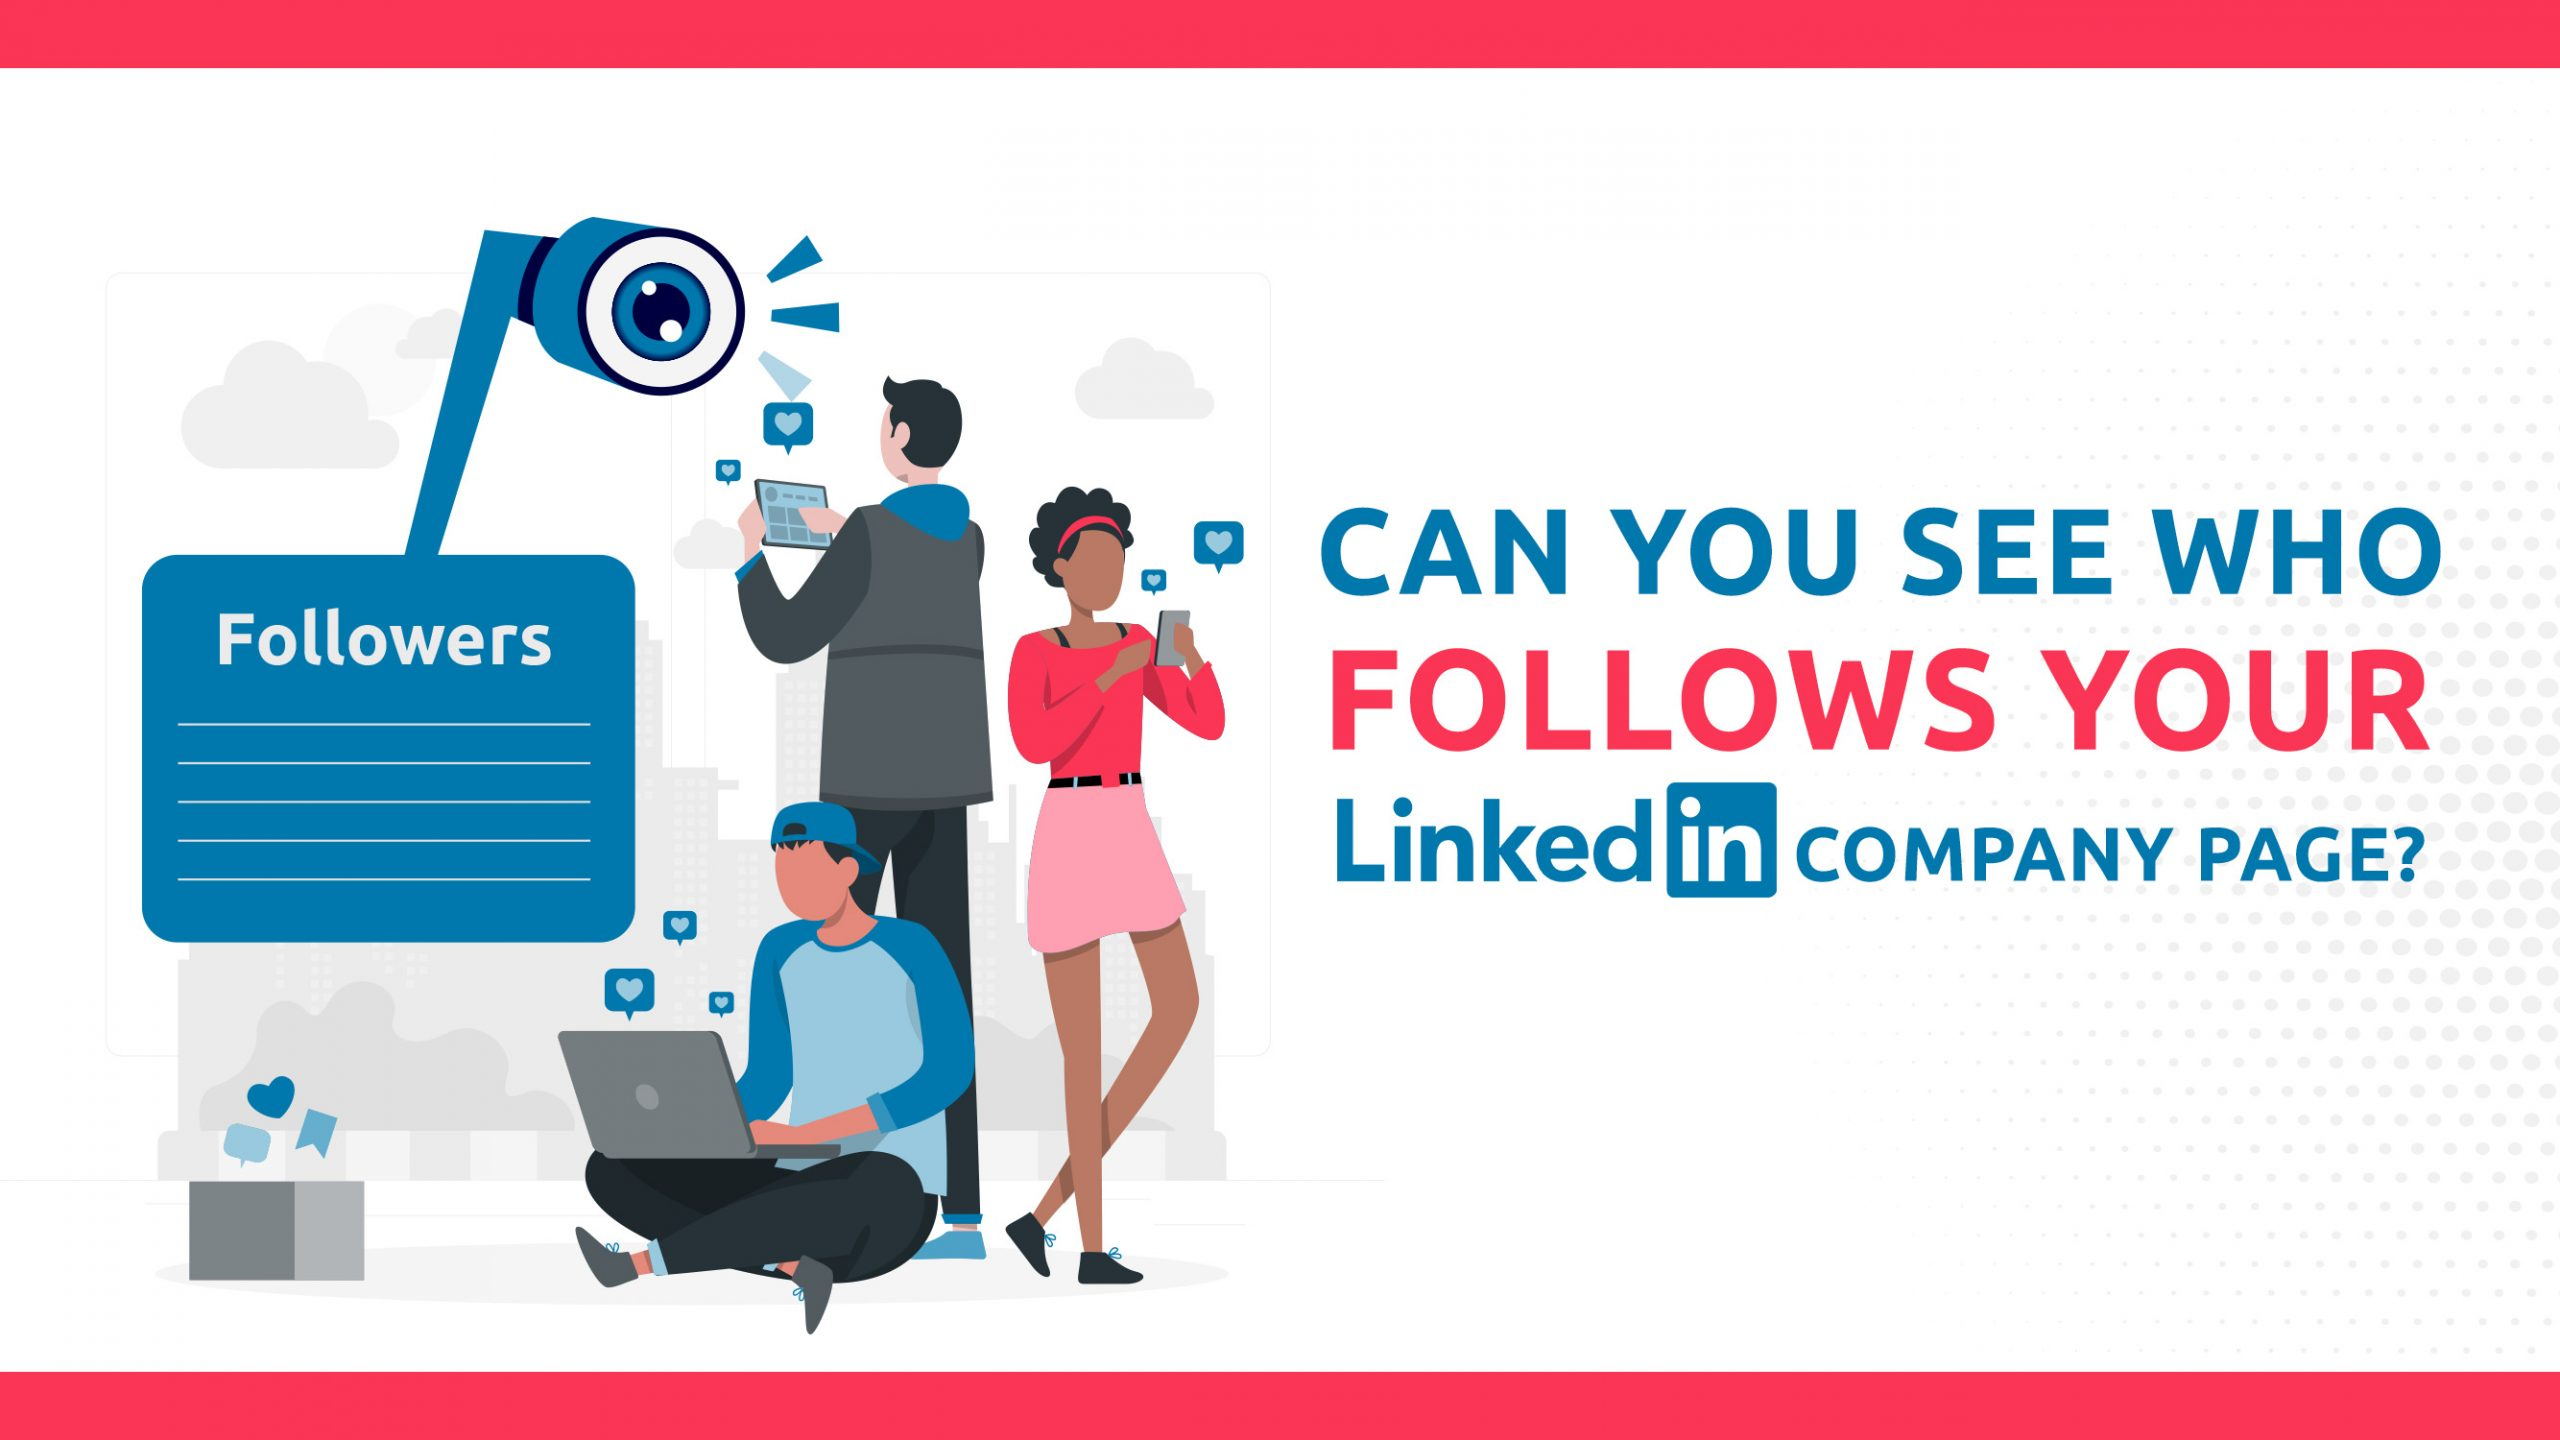 Can You See Who Follows Your LinkedIn Company Page?